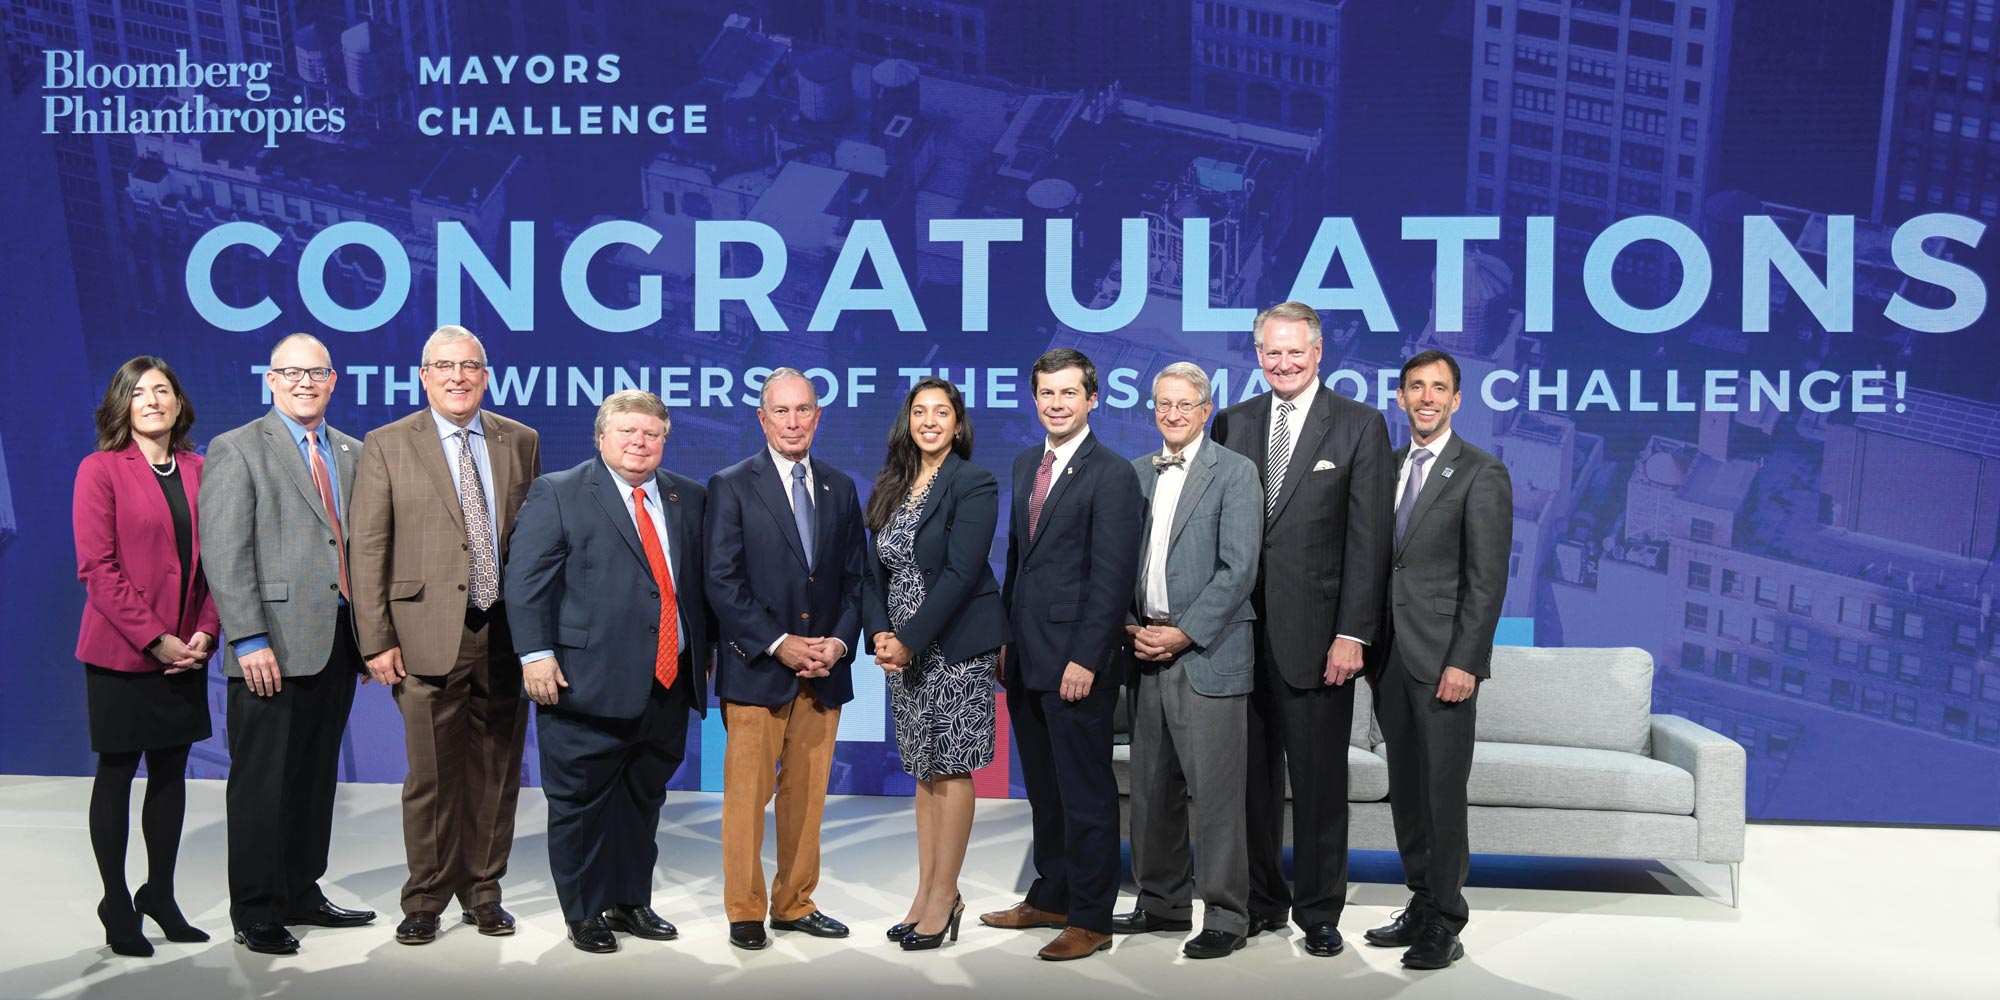 Mayors and representatives of the winning cities in the 2018 Mayors Challenge join Mike Bloomberg onstage at CityLab 2018 in Detroit, Michigan.